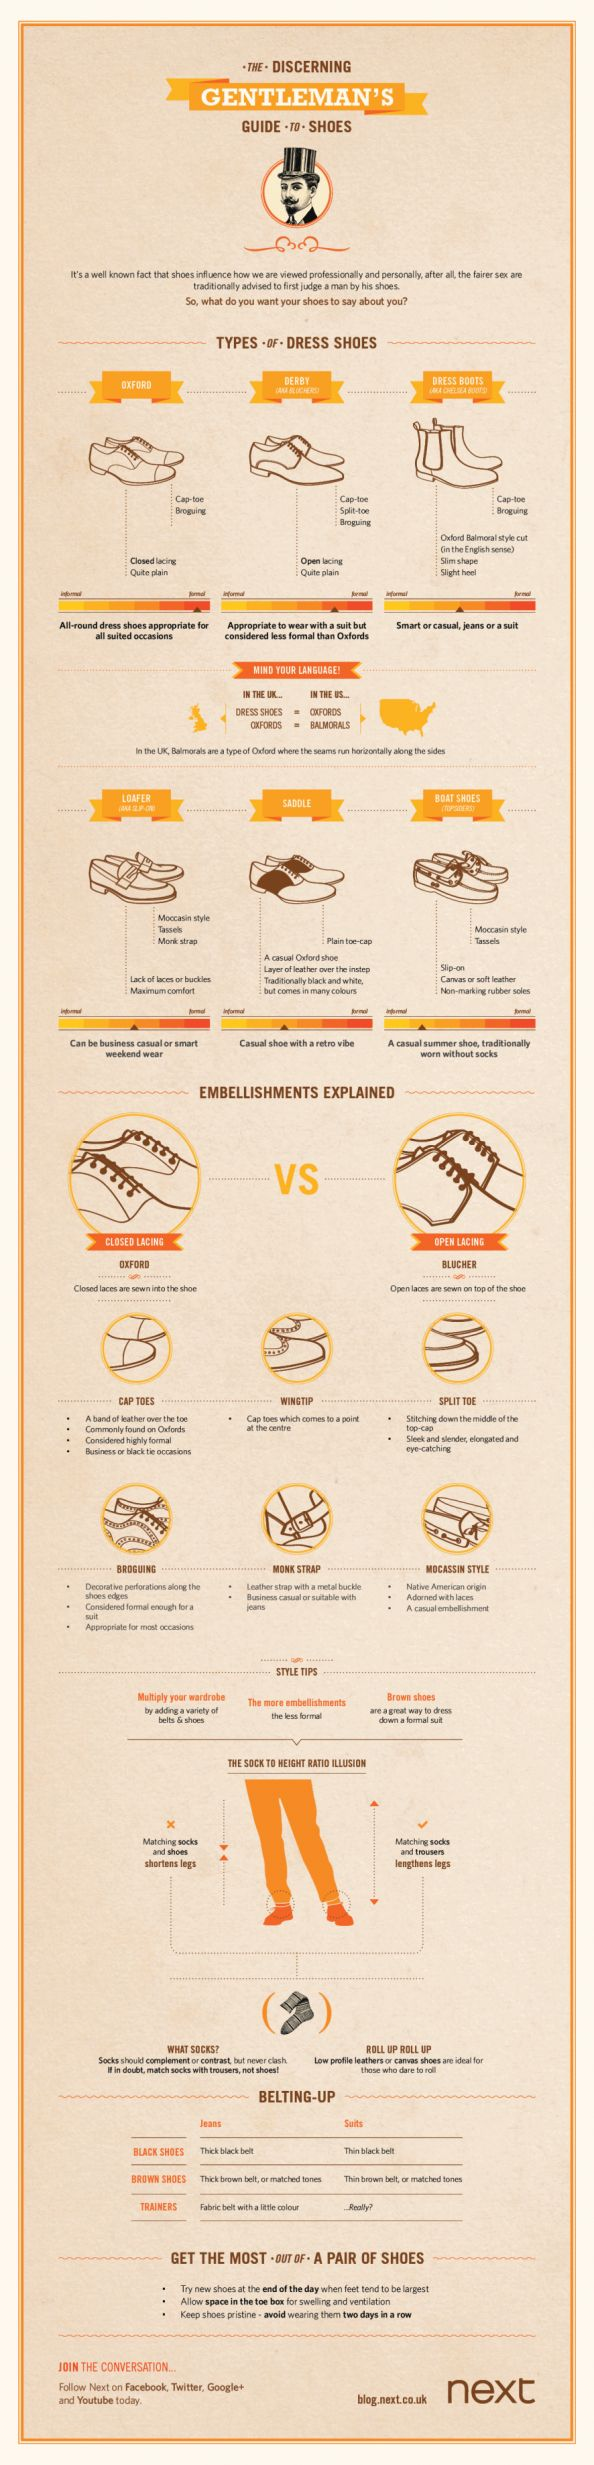 The Gentleman's guide to shoes. Get the vocab so you can ask for what you love!